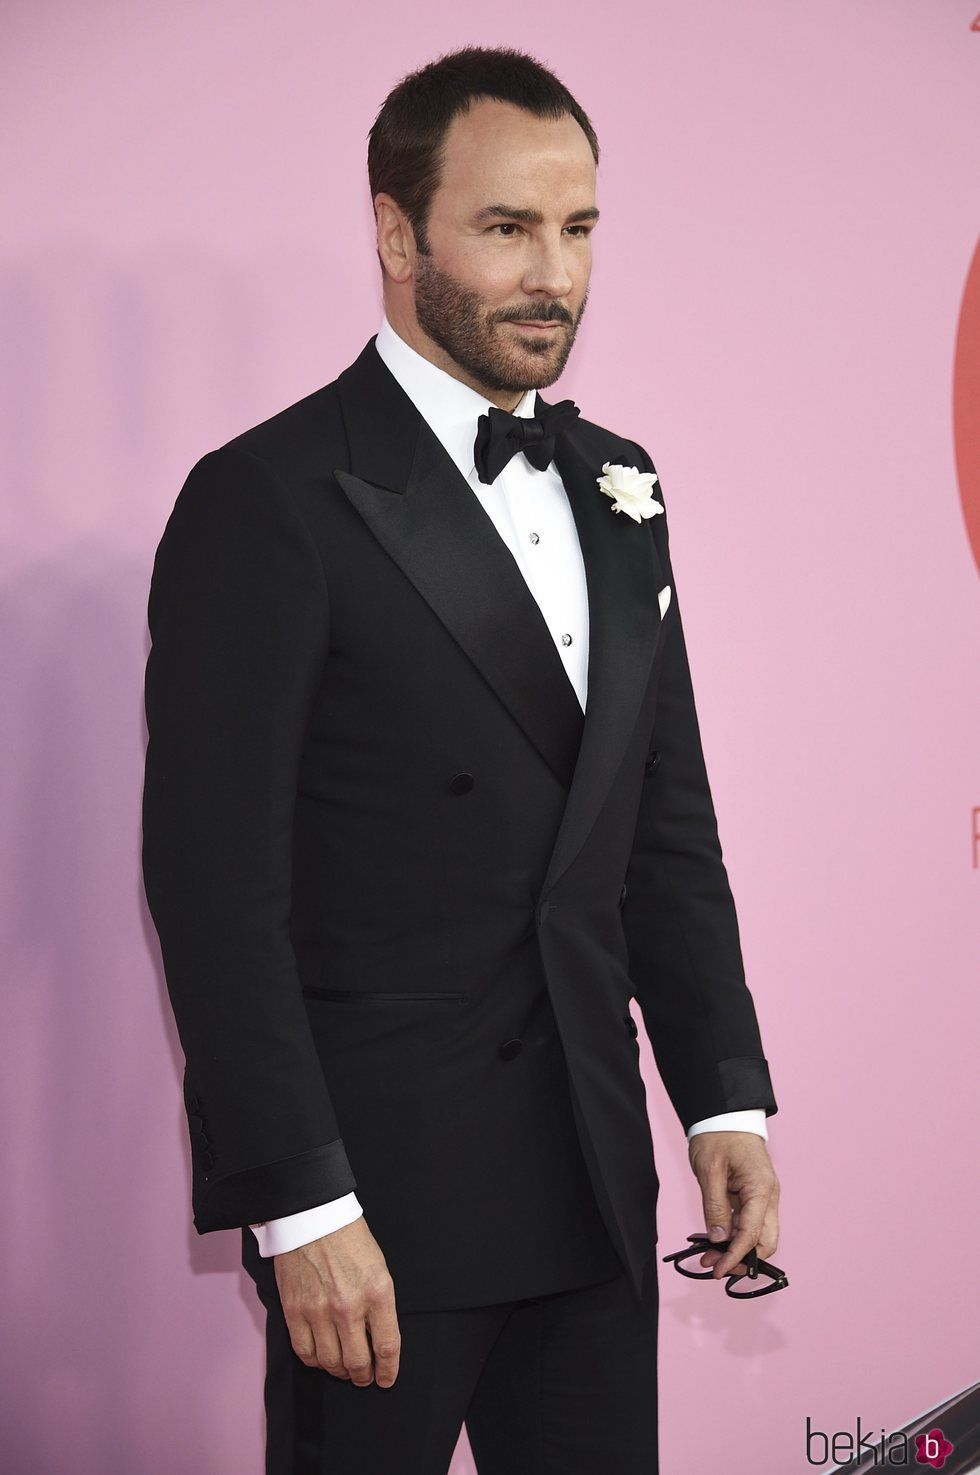 Tom Ford en la alfombra roja de los CFDA FASHION AWARDS 2019